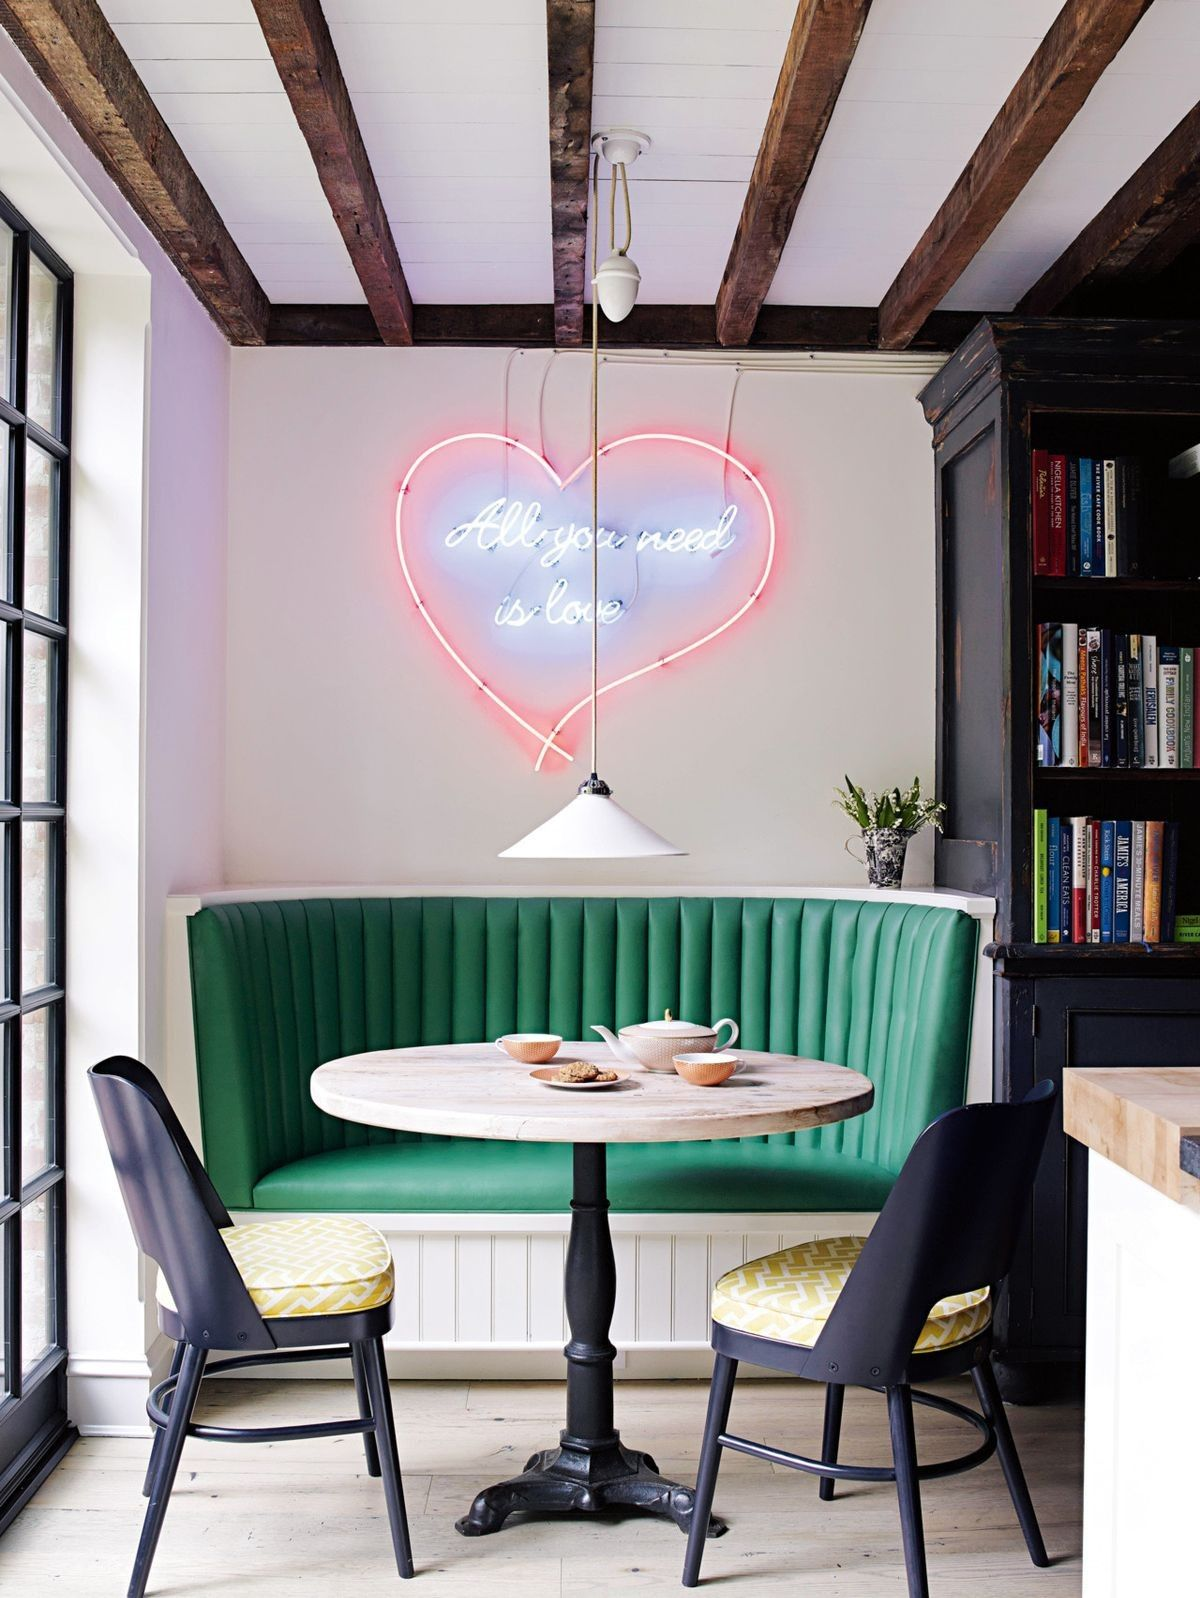 Interior Design Tips to Make the Most of Your Small Dining Room